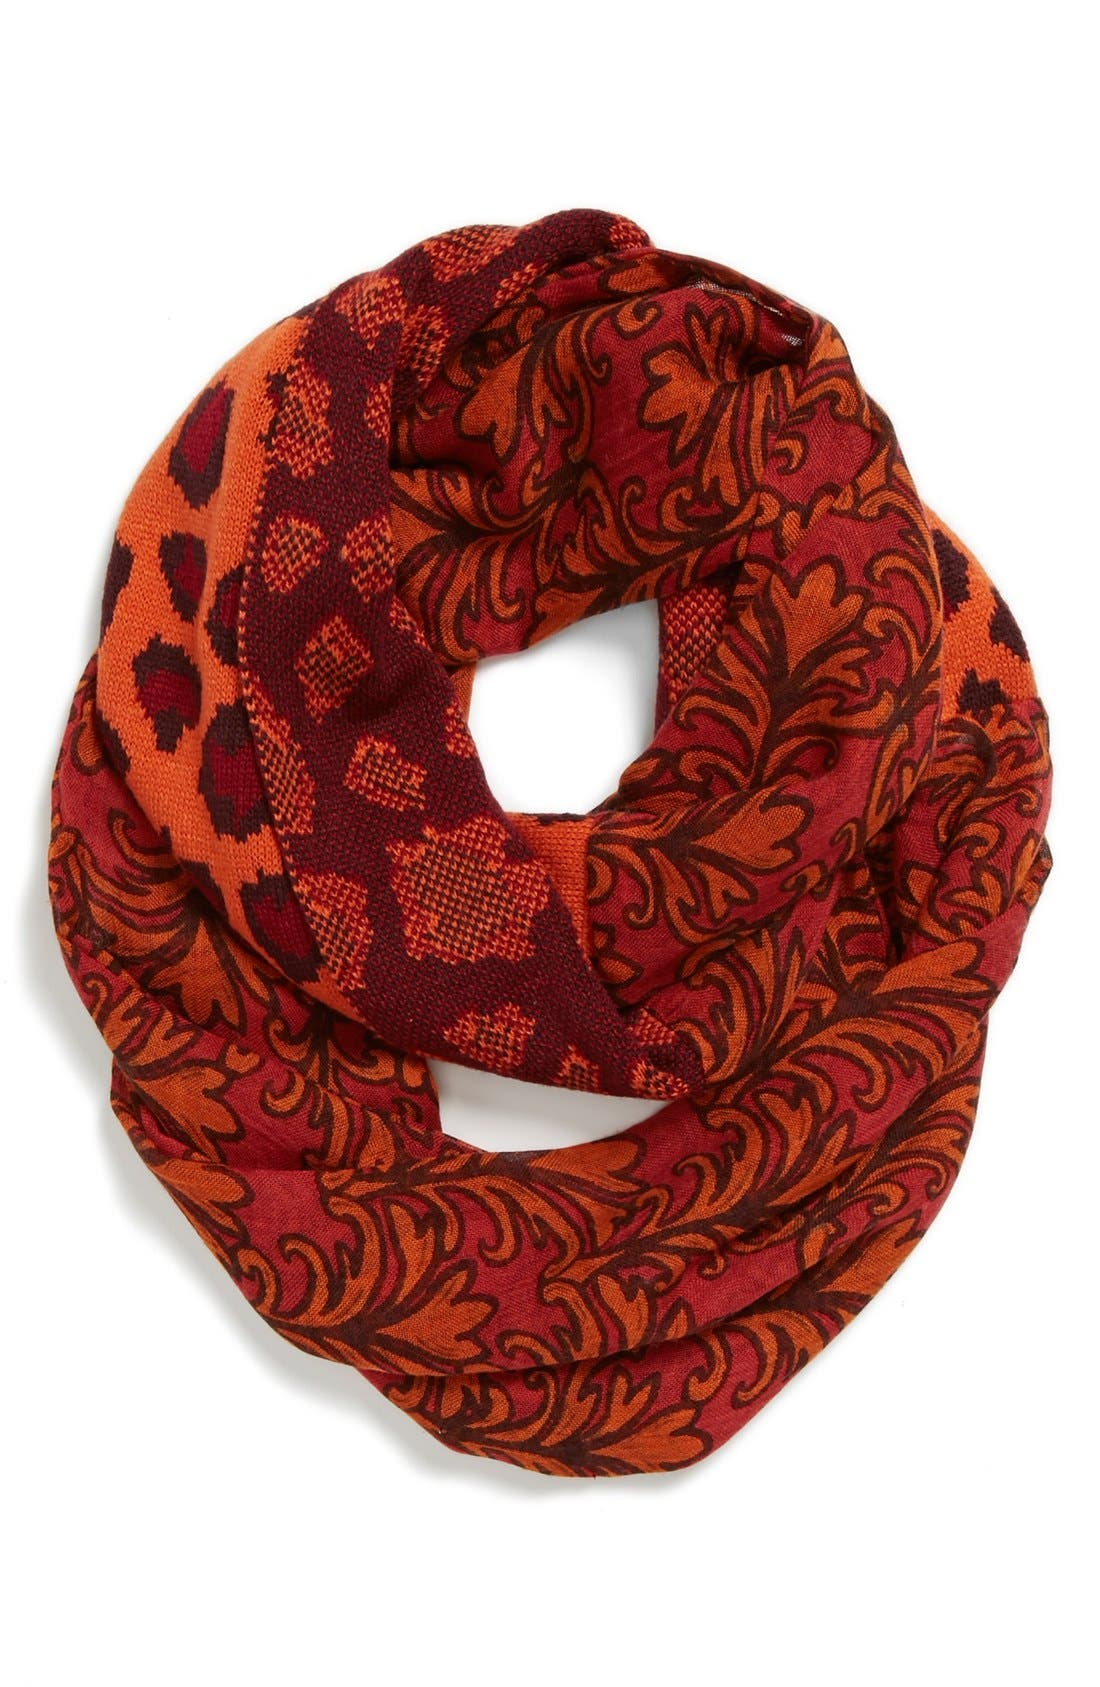 Alternate Image 1 Selected - Collection XIIX Print & Jacquard Infinity Scarf